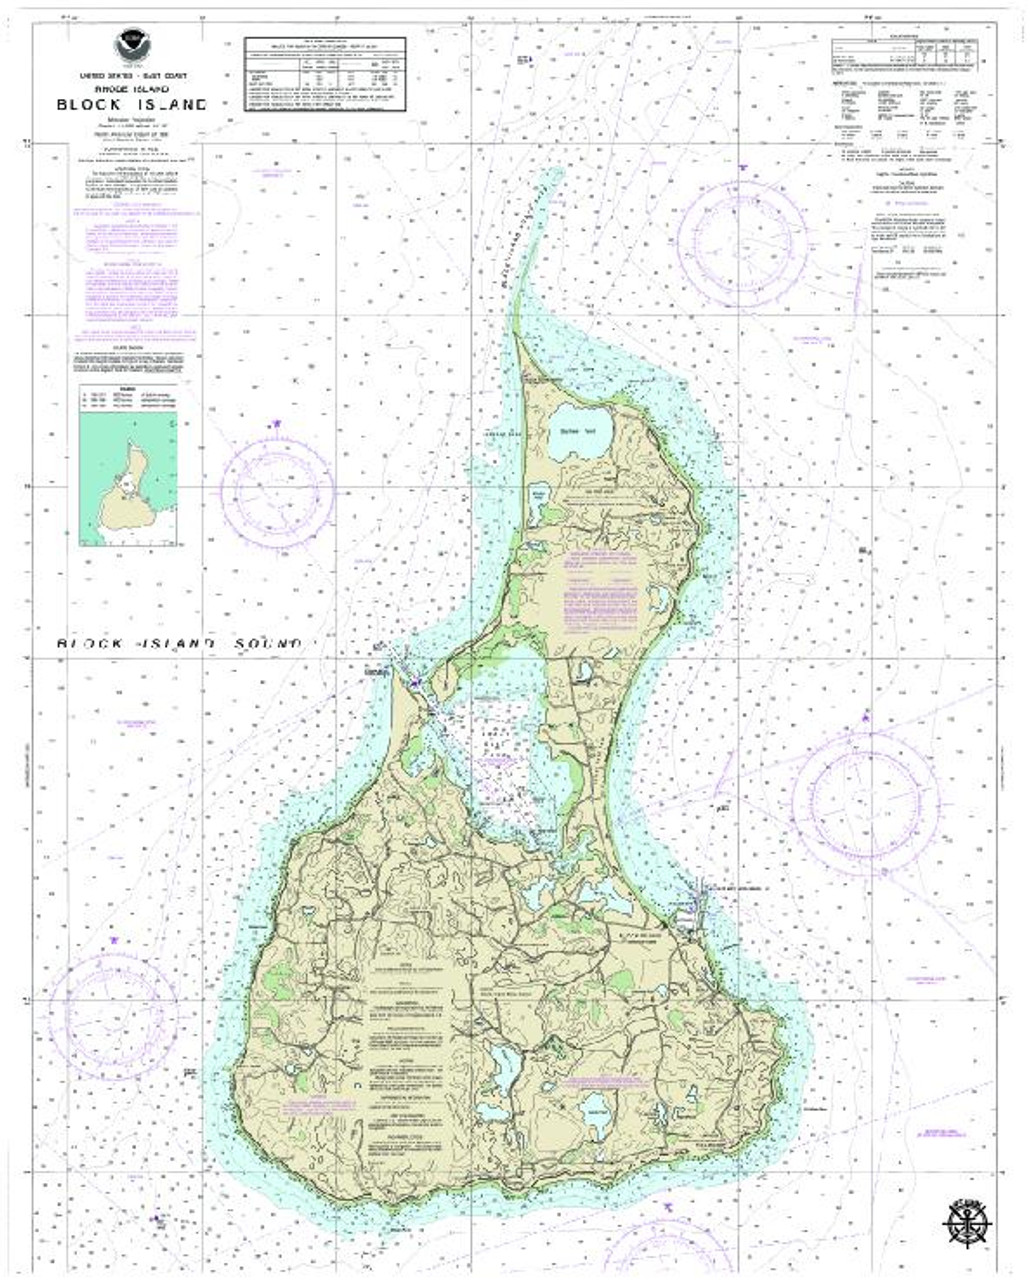 Block Island, R.I. Nautical Chart on Canvas - 3 Sizes Avail. - 3 Sizes Avail.